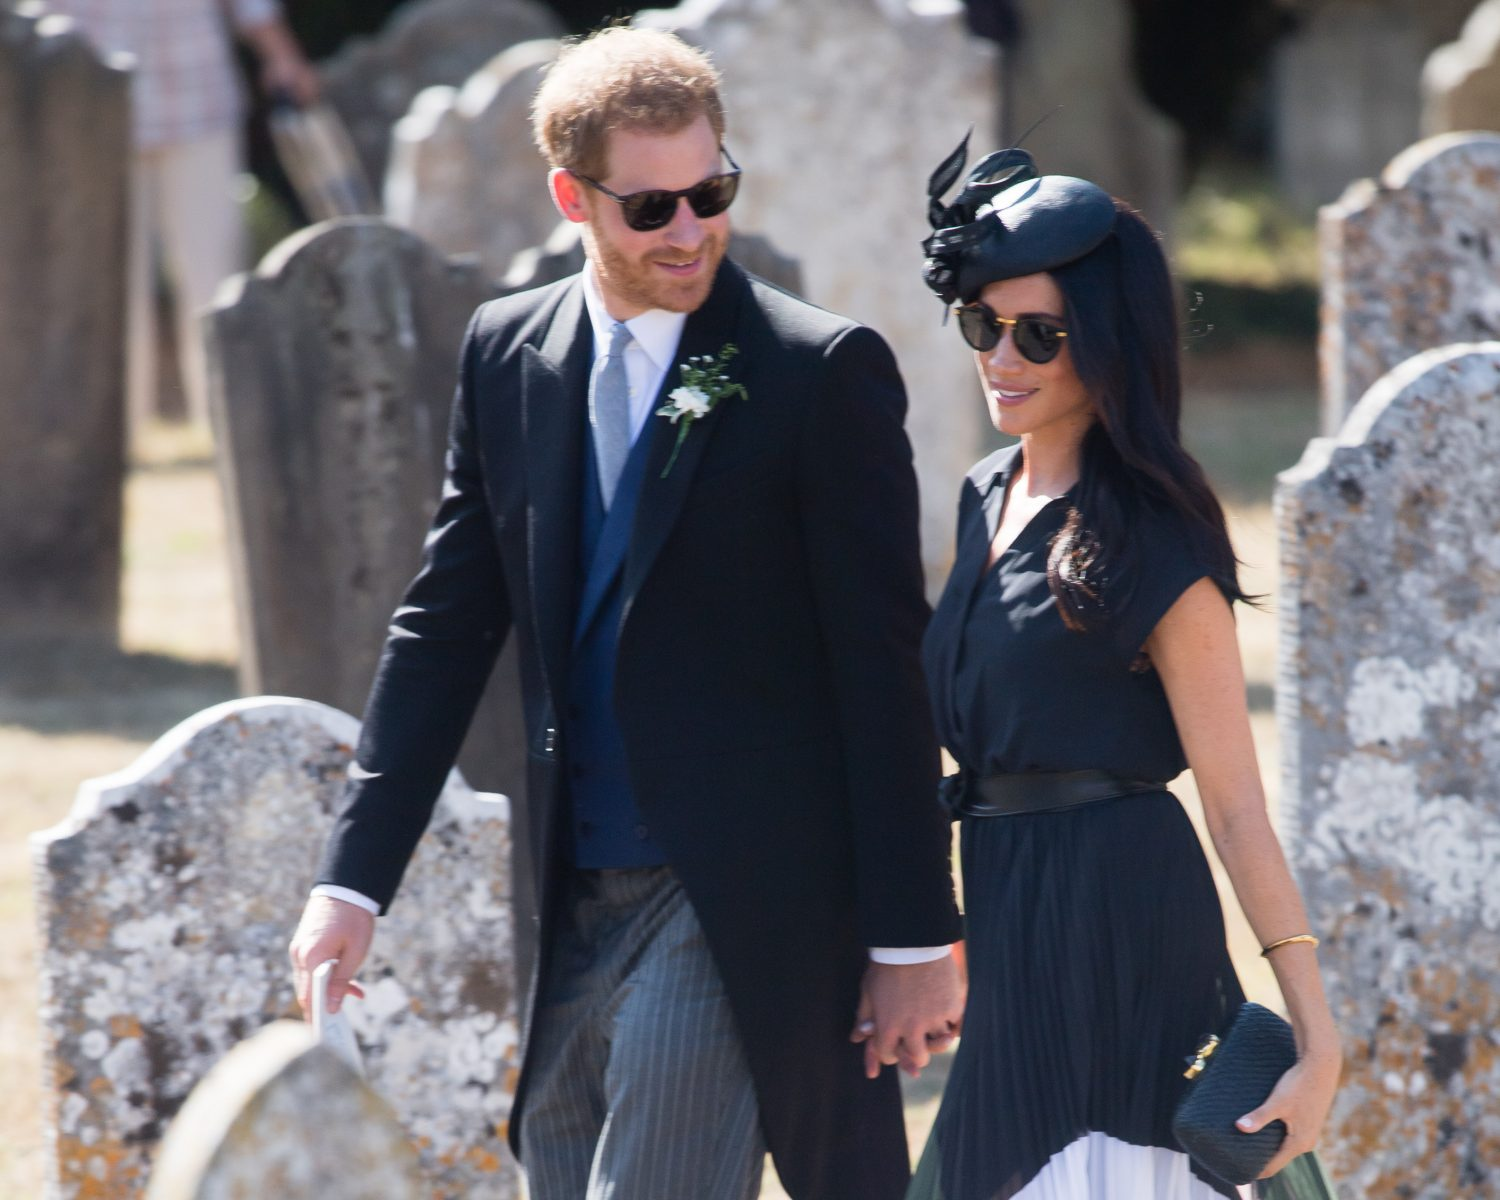 Frensham United Kingdom August 04 Prince Harry Duke Of Sus And Meghan Ss Attends The Wedding Charlie Van Straubenzee On 4